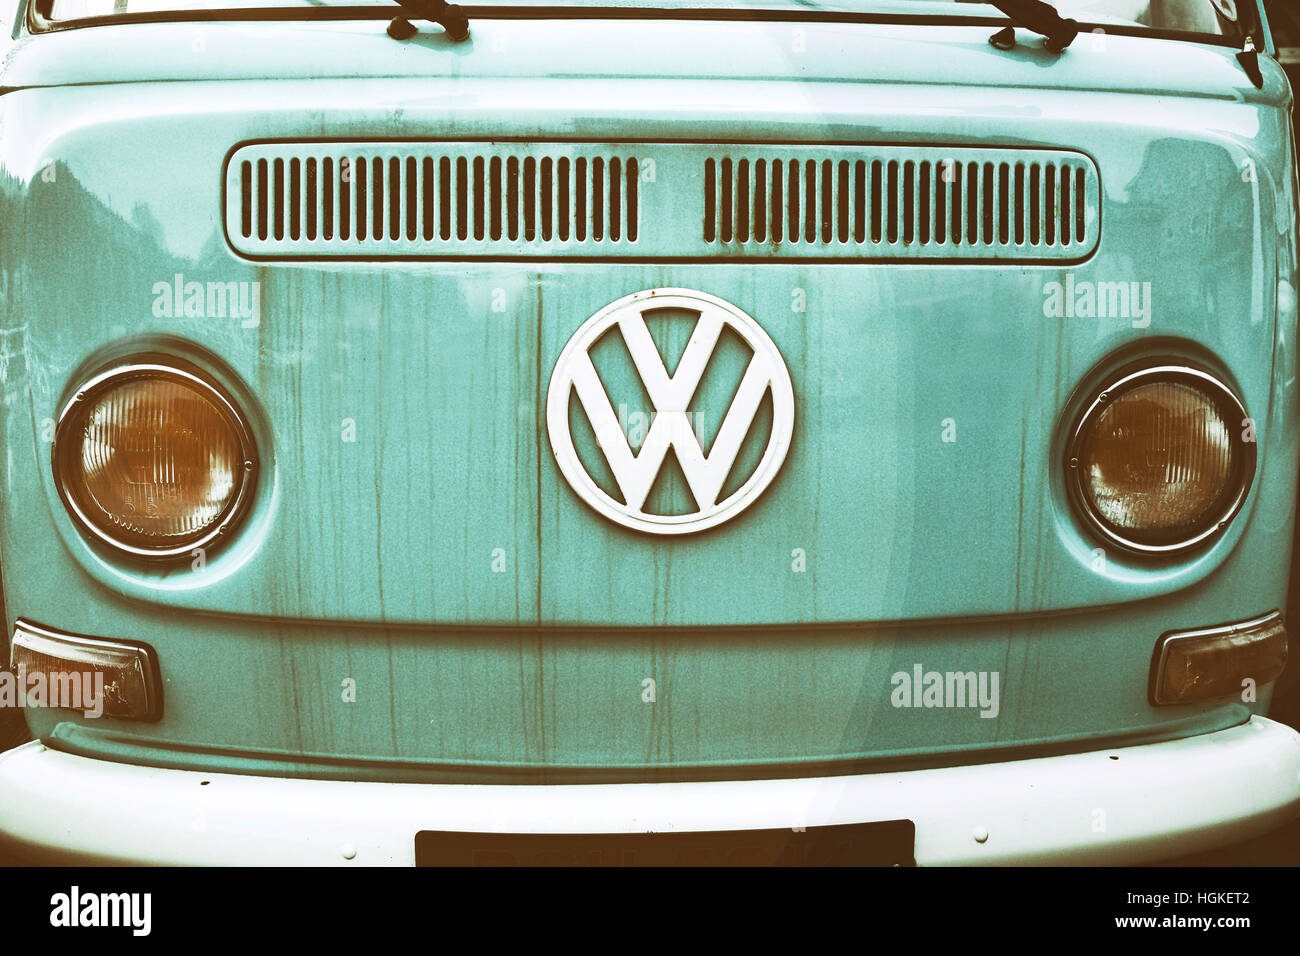 Close Up Of Front Side An Old Volkswagen Transporter Van